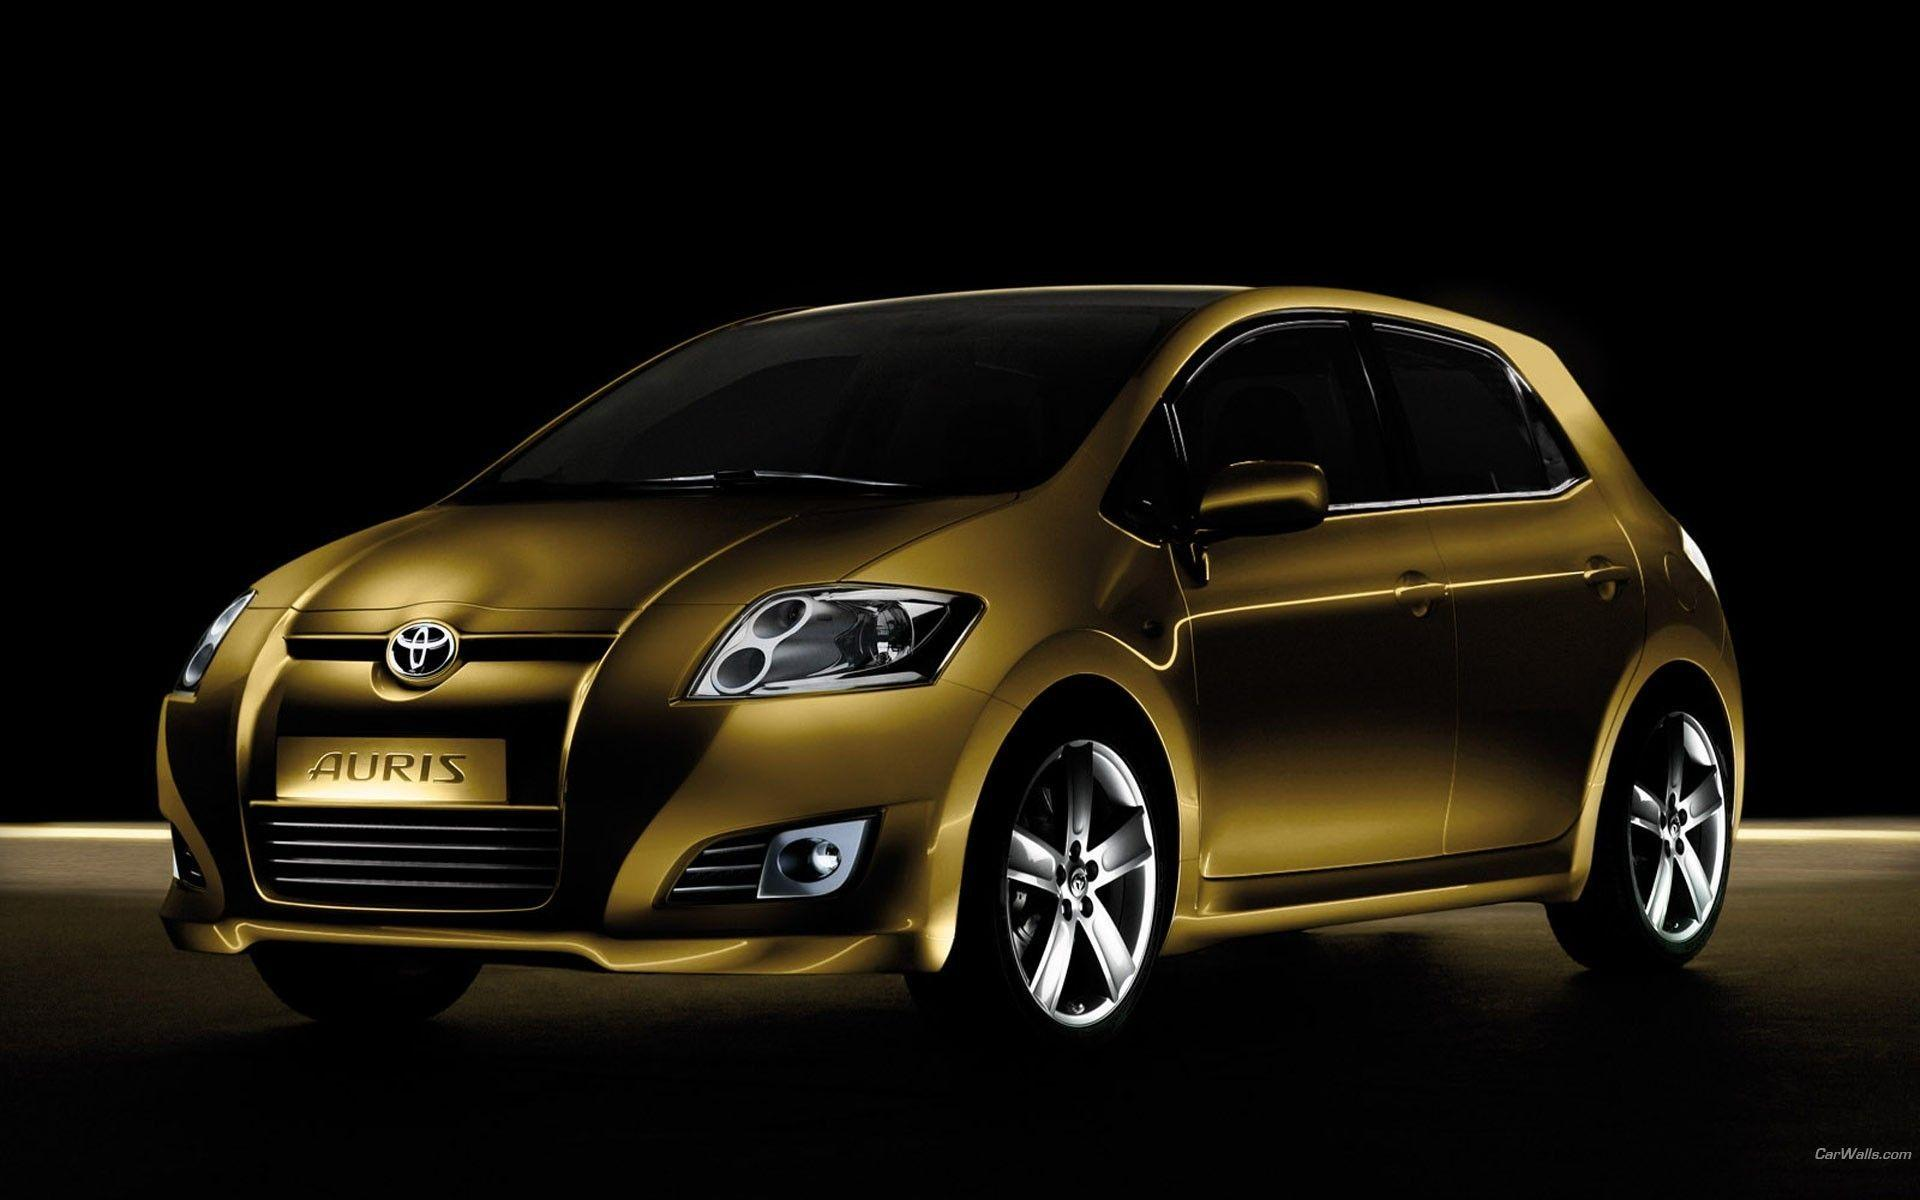 Toyota auris cars wallpapers